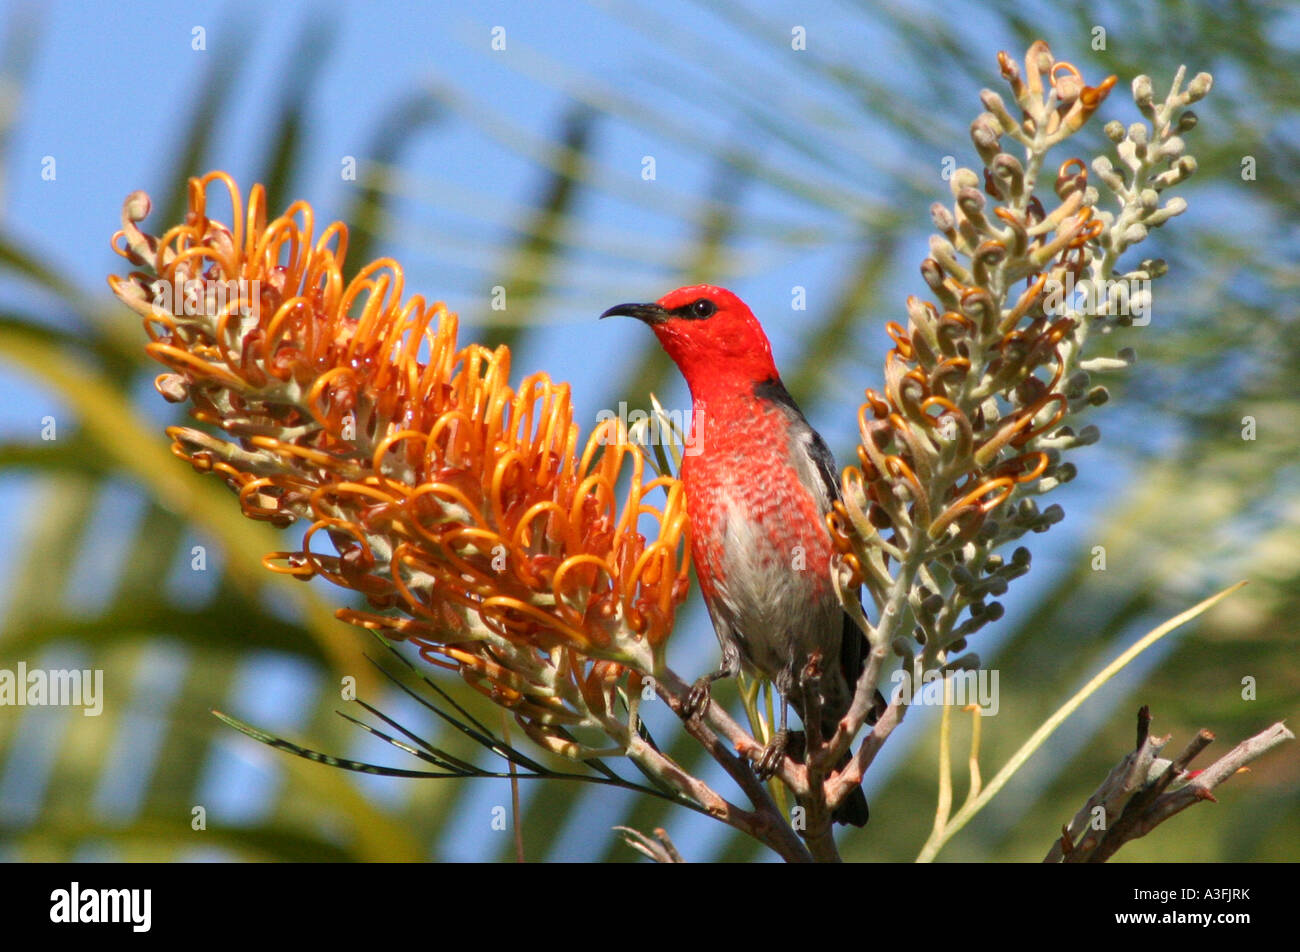 A SCARLET HONEYEATER FEEDING ON GREVILLEA TREES BAPDA9138 - Stock Image